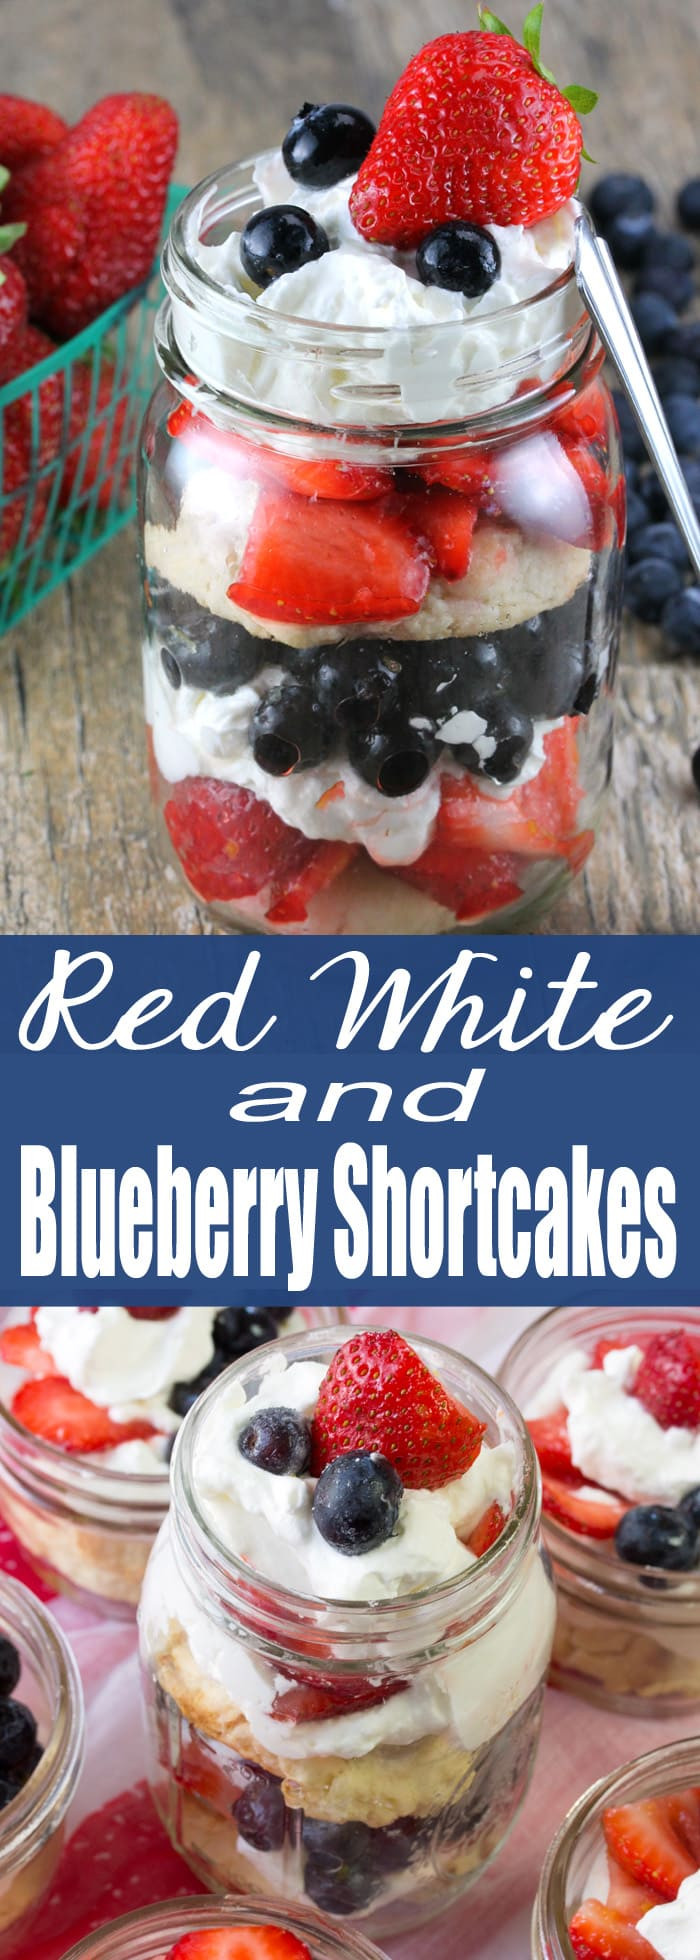 Homemade sweet biscuits, sweet seasoned berries, and freshly whipped cream.  Red White and Blueberry Shortcake is the perfect patriotic dessert.